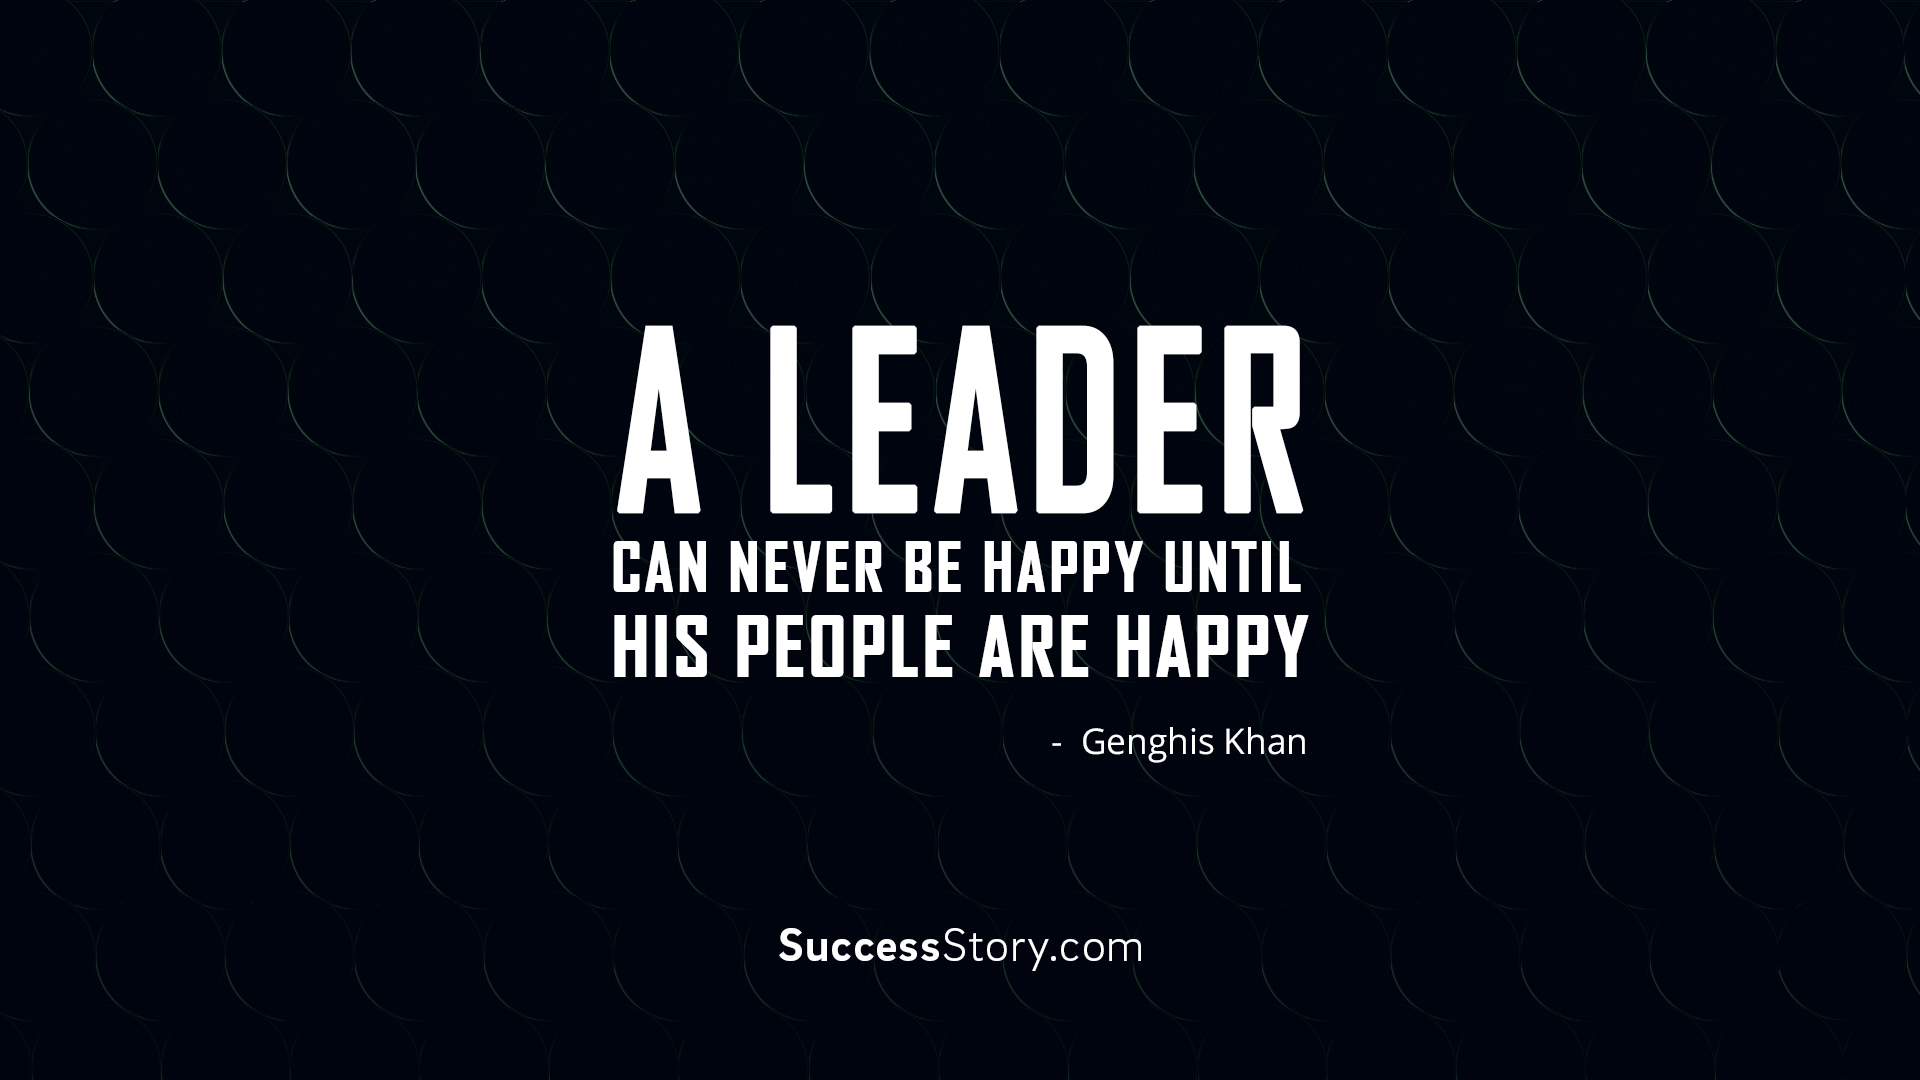 A leader can